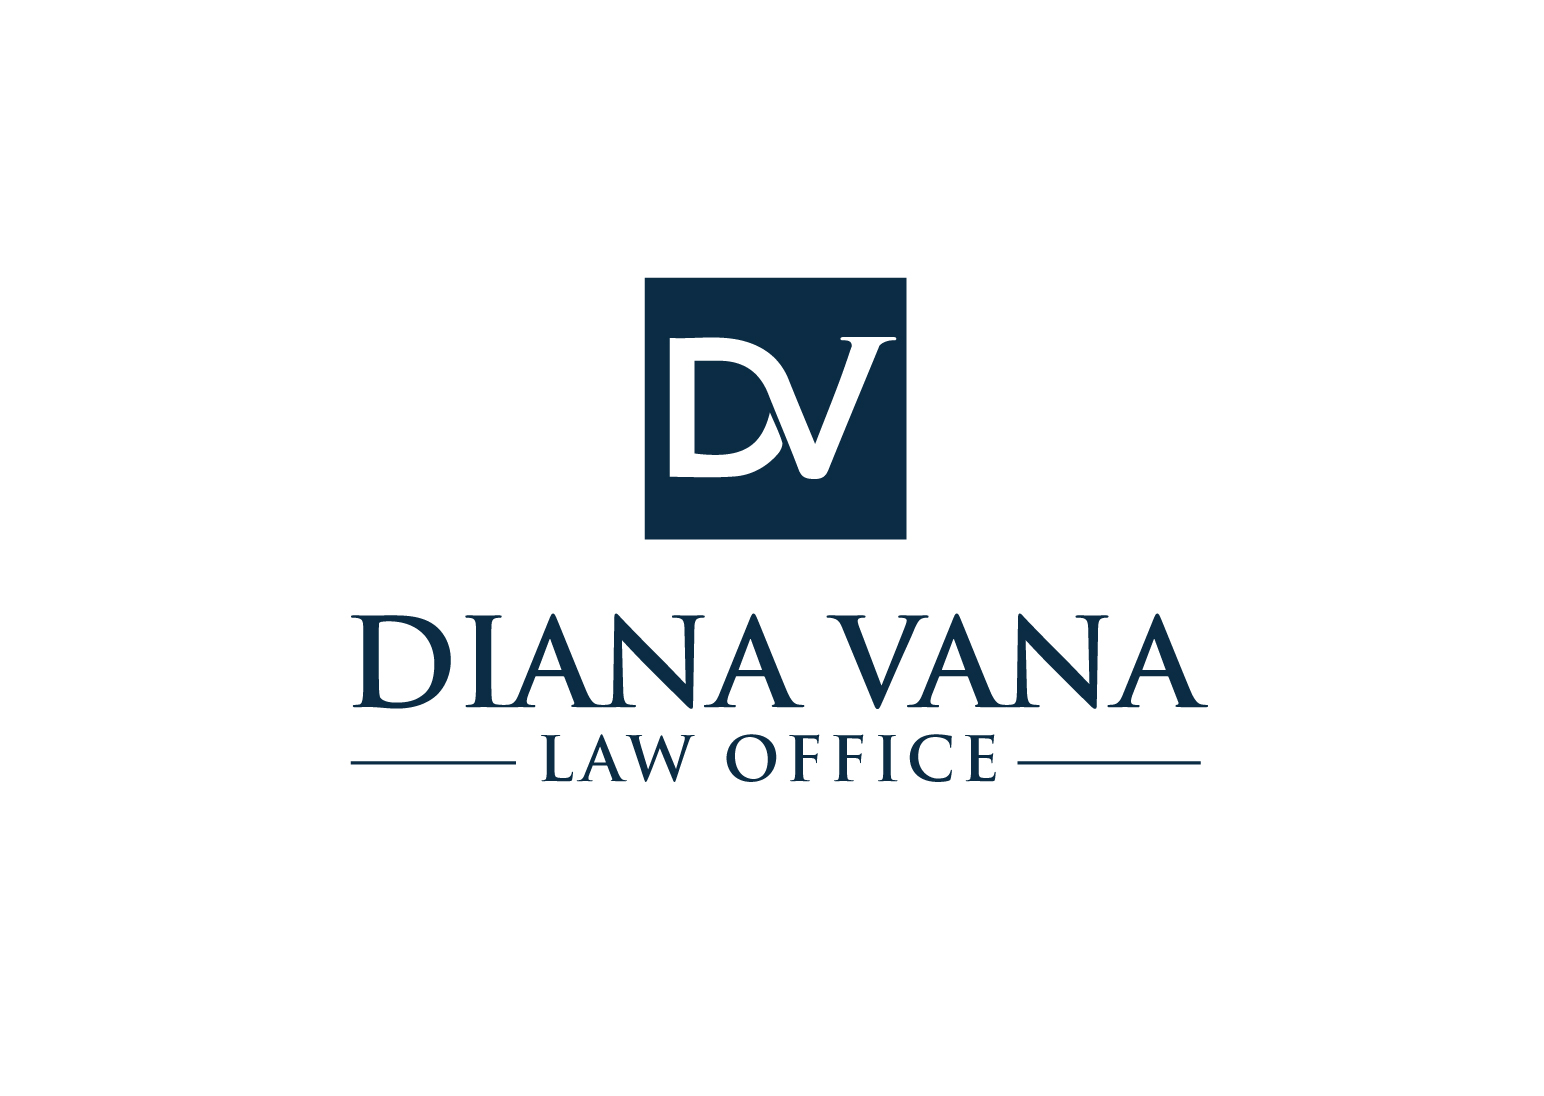 Diana Vana Law Office